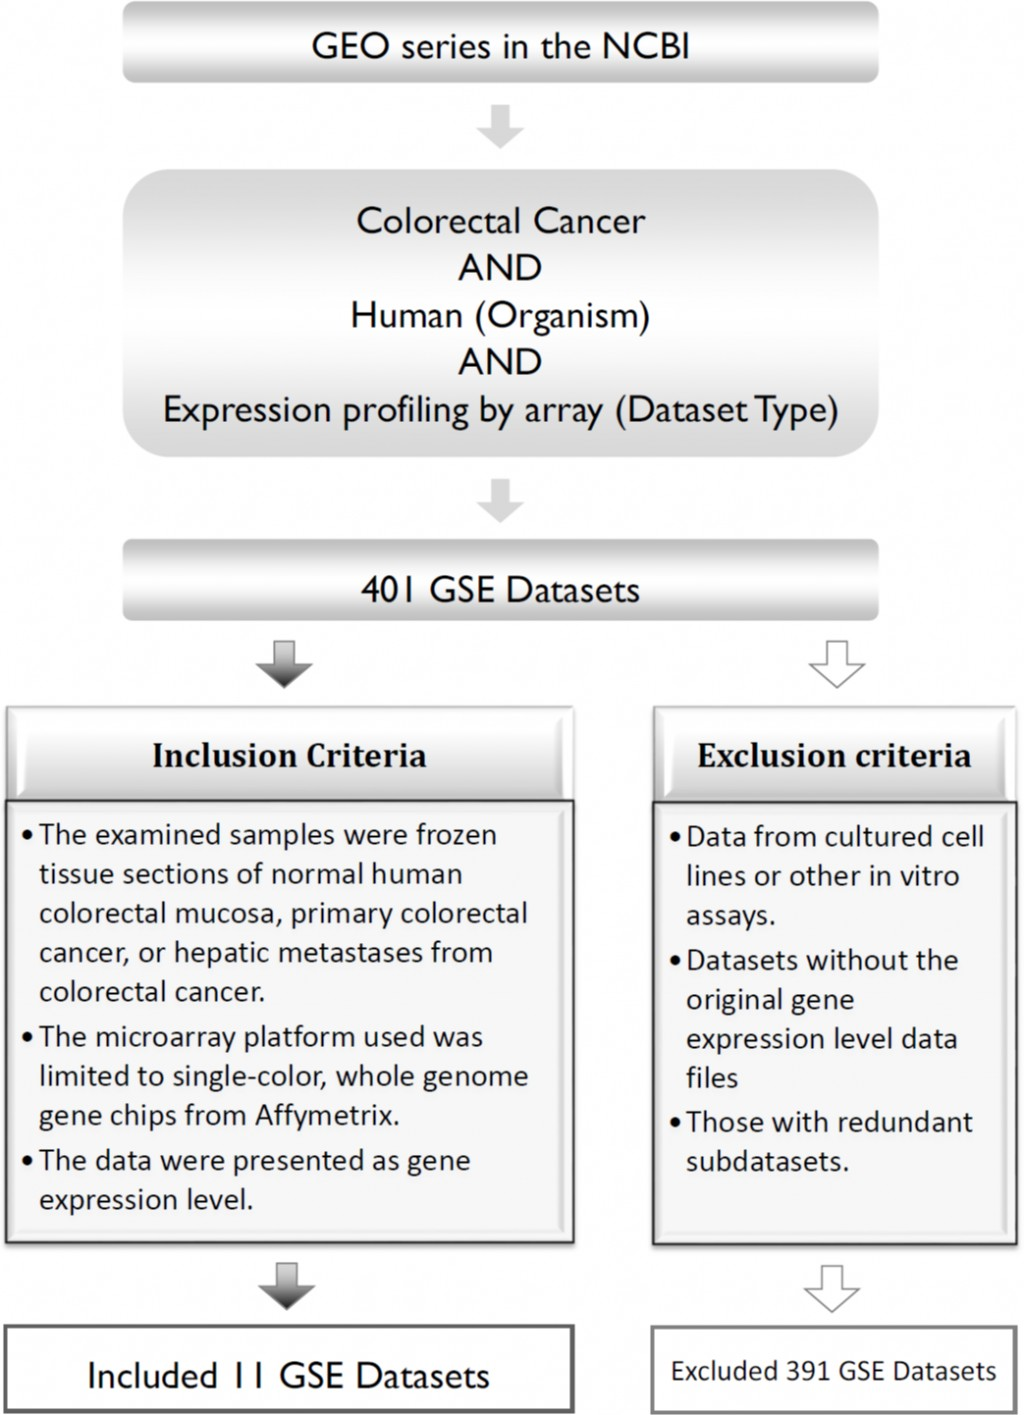 006 Colon Cancer Research Paper Outline Fig Imposing Large